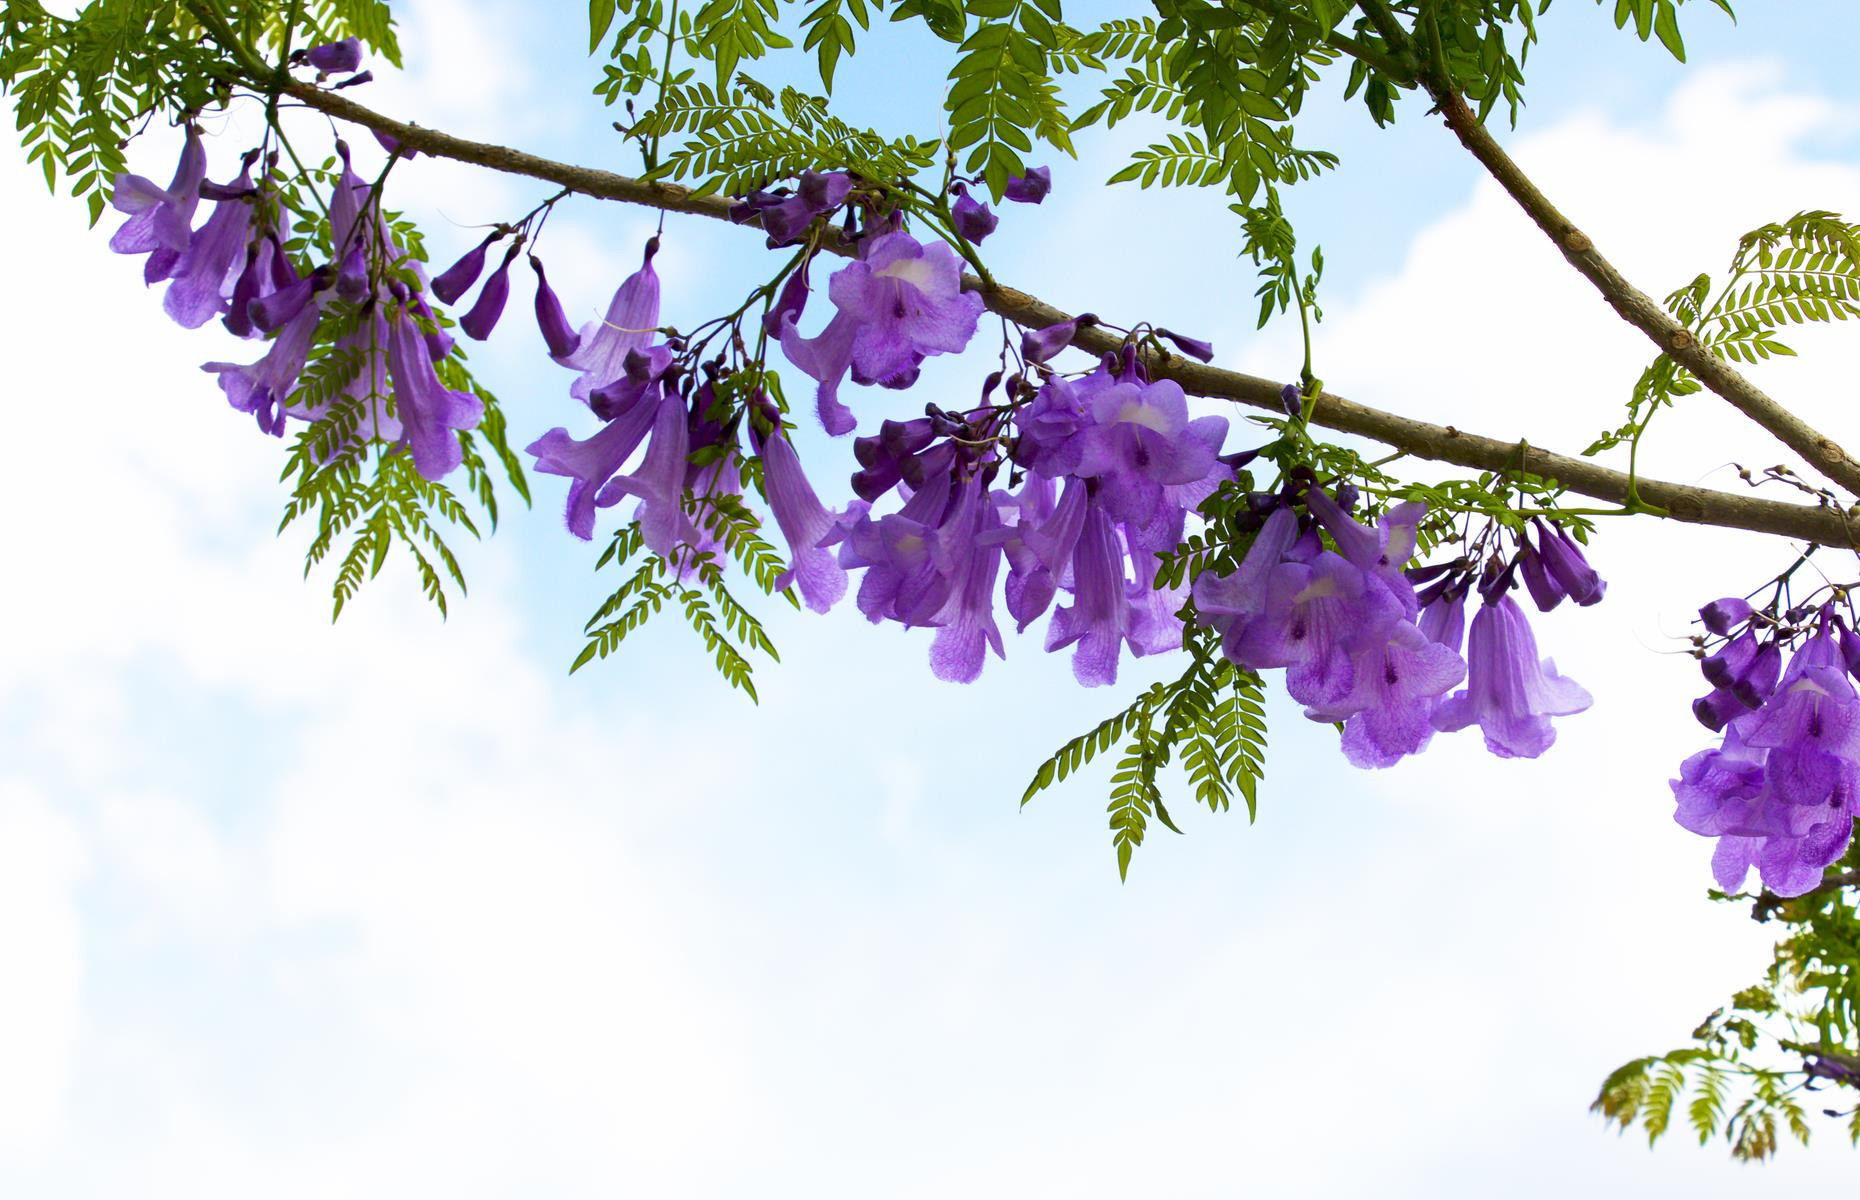 Slide 19 of 27: Though jacarandas have become something of a national symbol in South Africa, they're not actually native to the country. The first trees were brought to South Africa in the 19th century from Brazil. Now discover more of the world's most beautiful natural wonders.